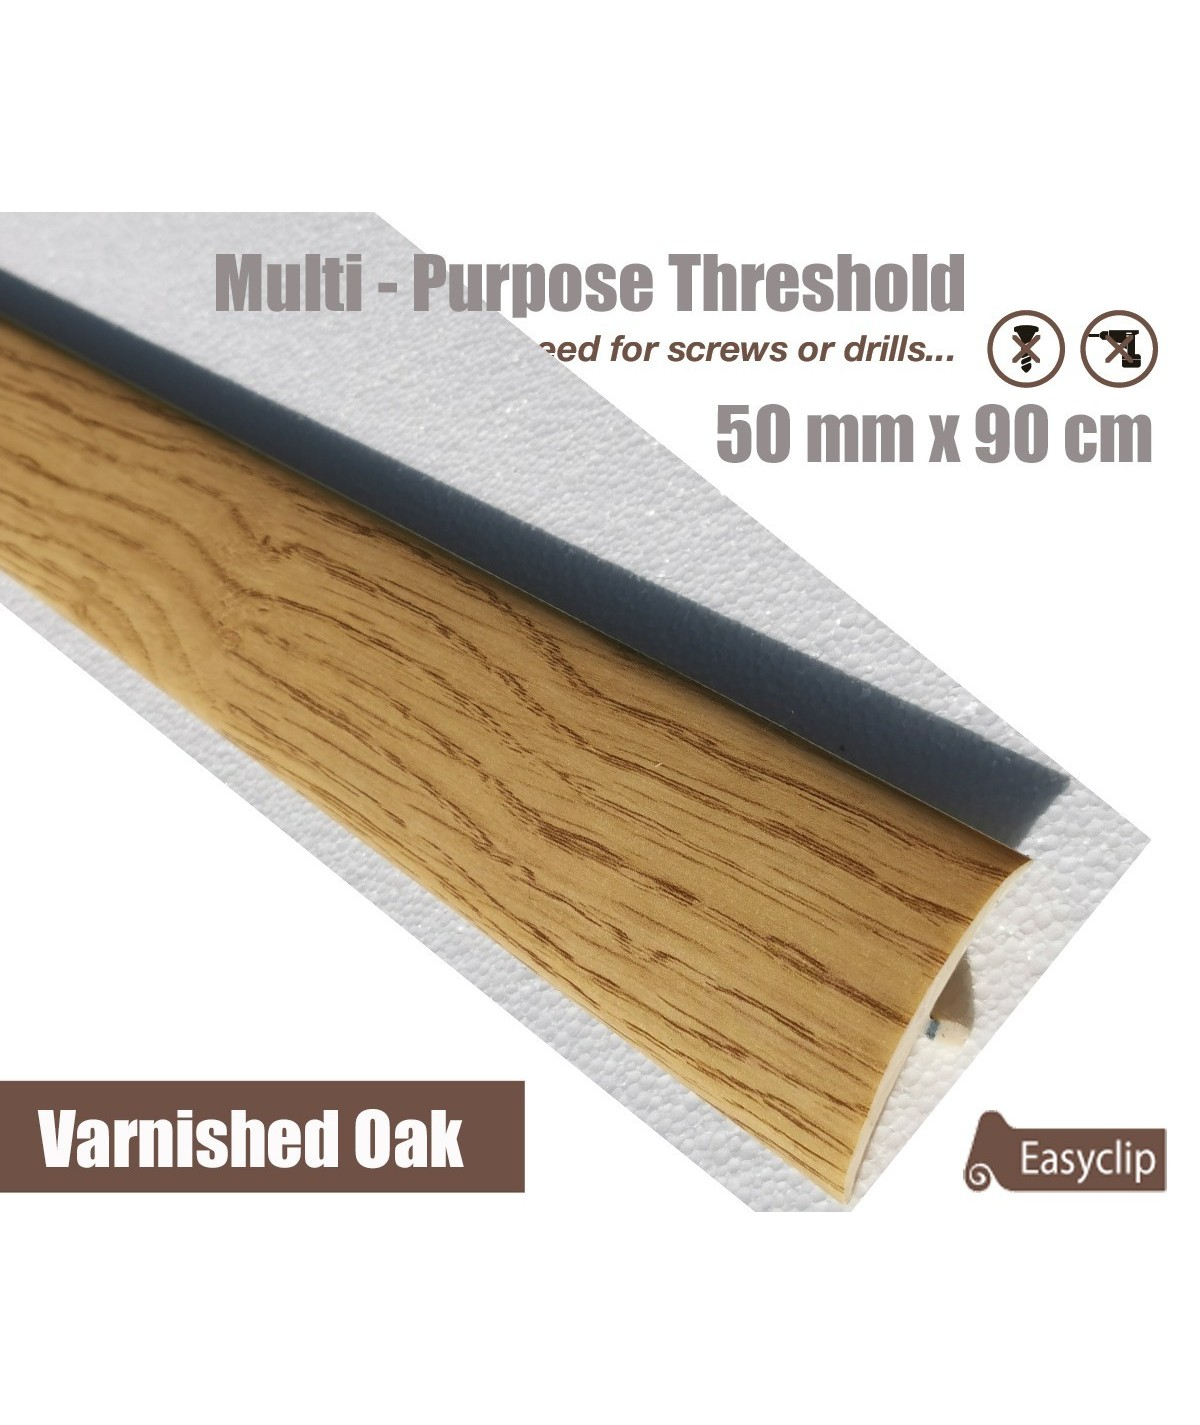 Varnished Oak Laminated Transition Threshold Strip 50mm x 90cm Multi-Height/Pivots